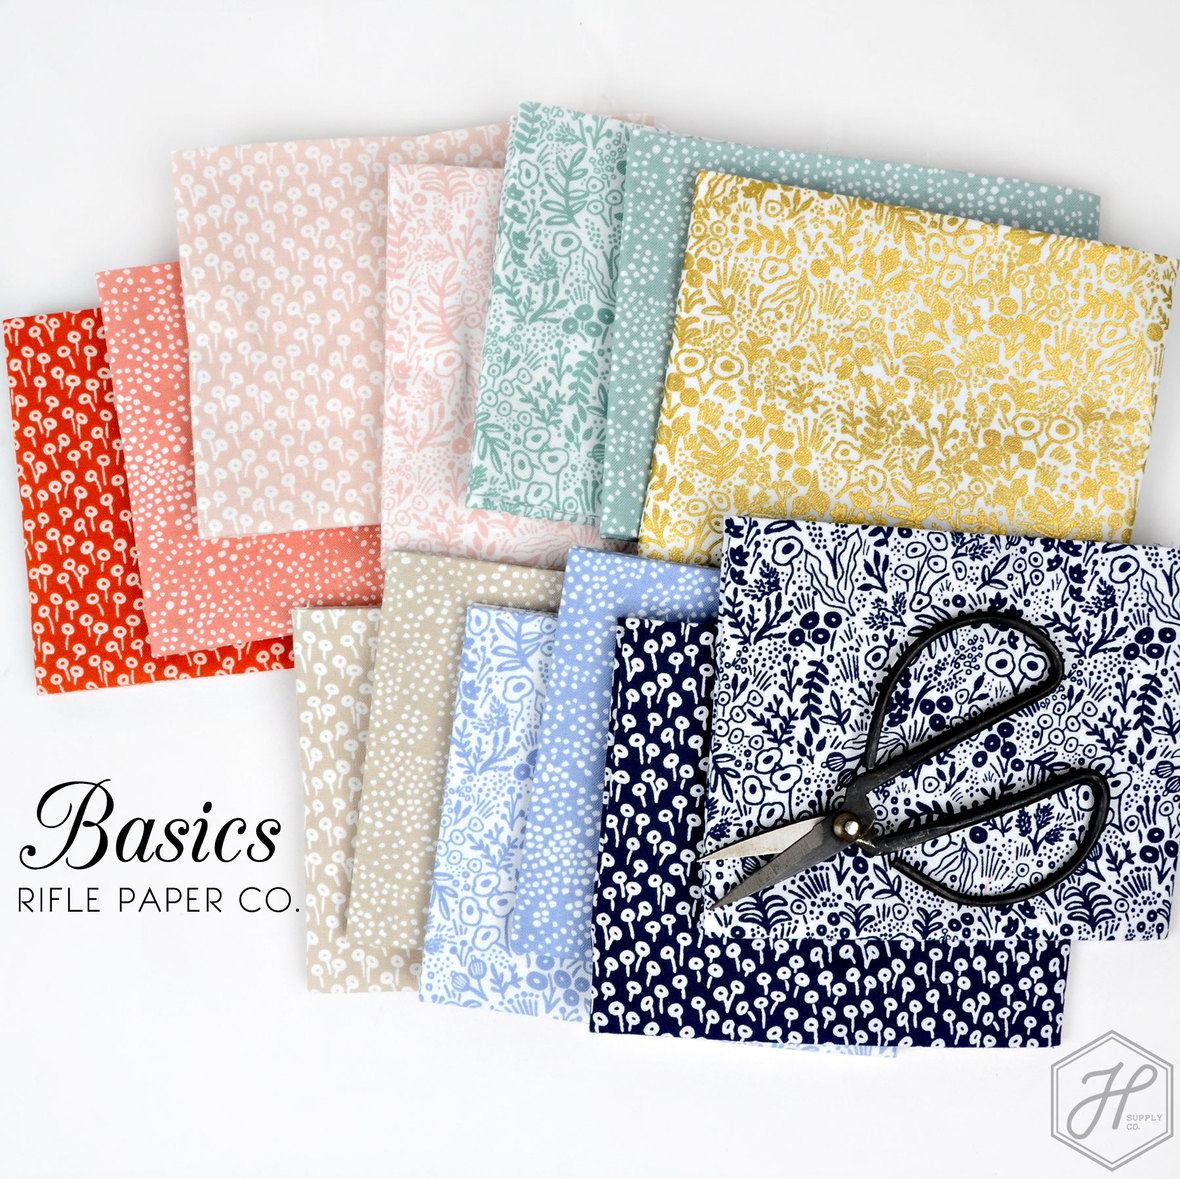 Rifle-Paper-Co-Basics-for-Cotton-and-Steel-at-Hawthorne-Supply-Co